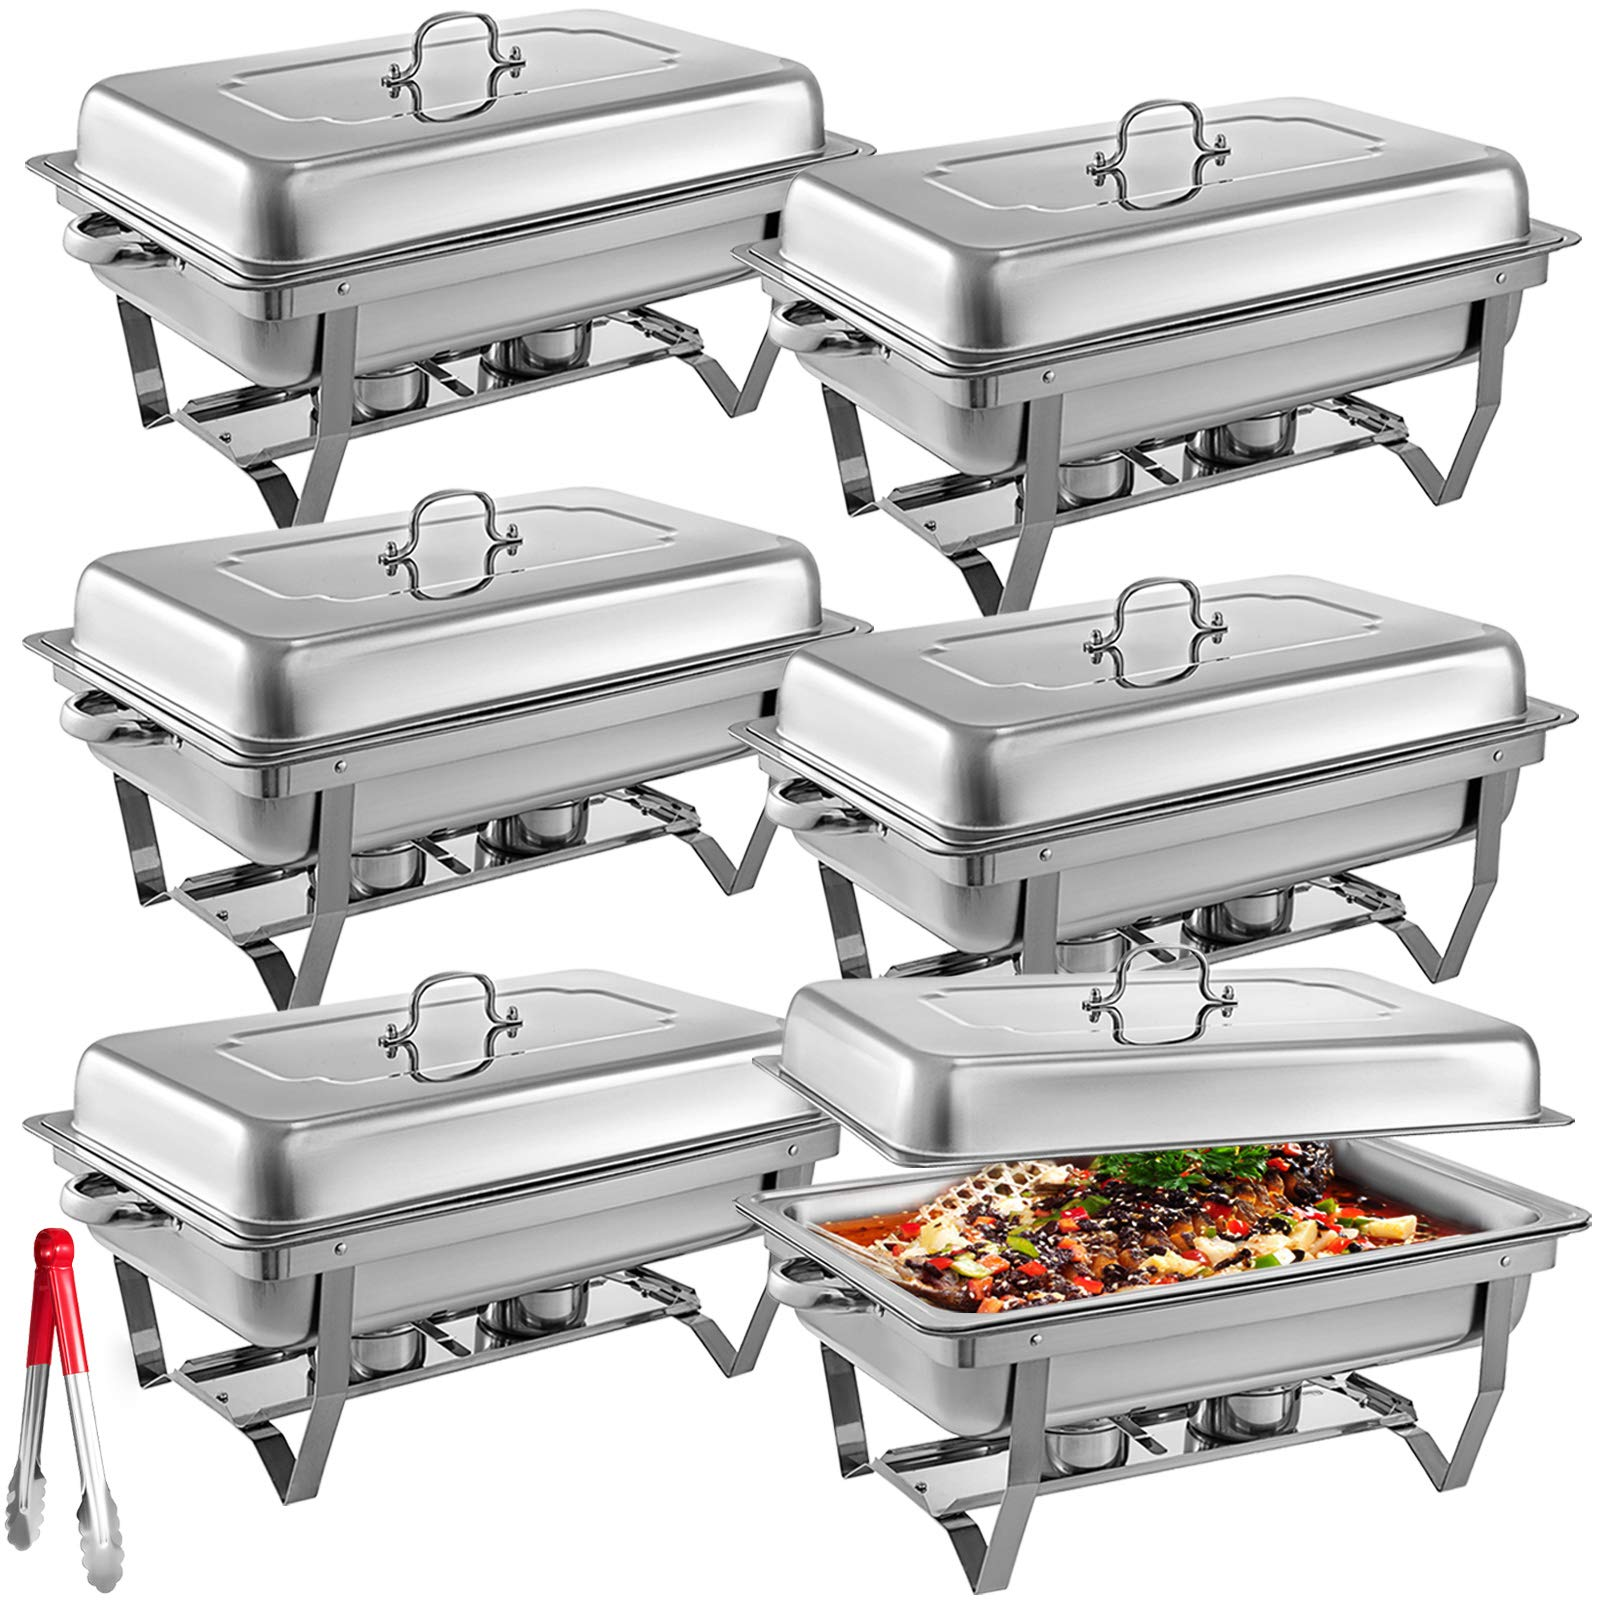 Mophorn 6 Packs Stainless Steel Chafing Dishes 8 Quart Full Size Pan Rectangular Chafer Complete Set by Mophorn